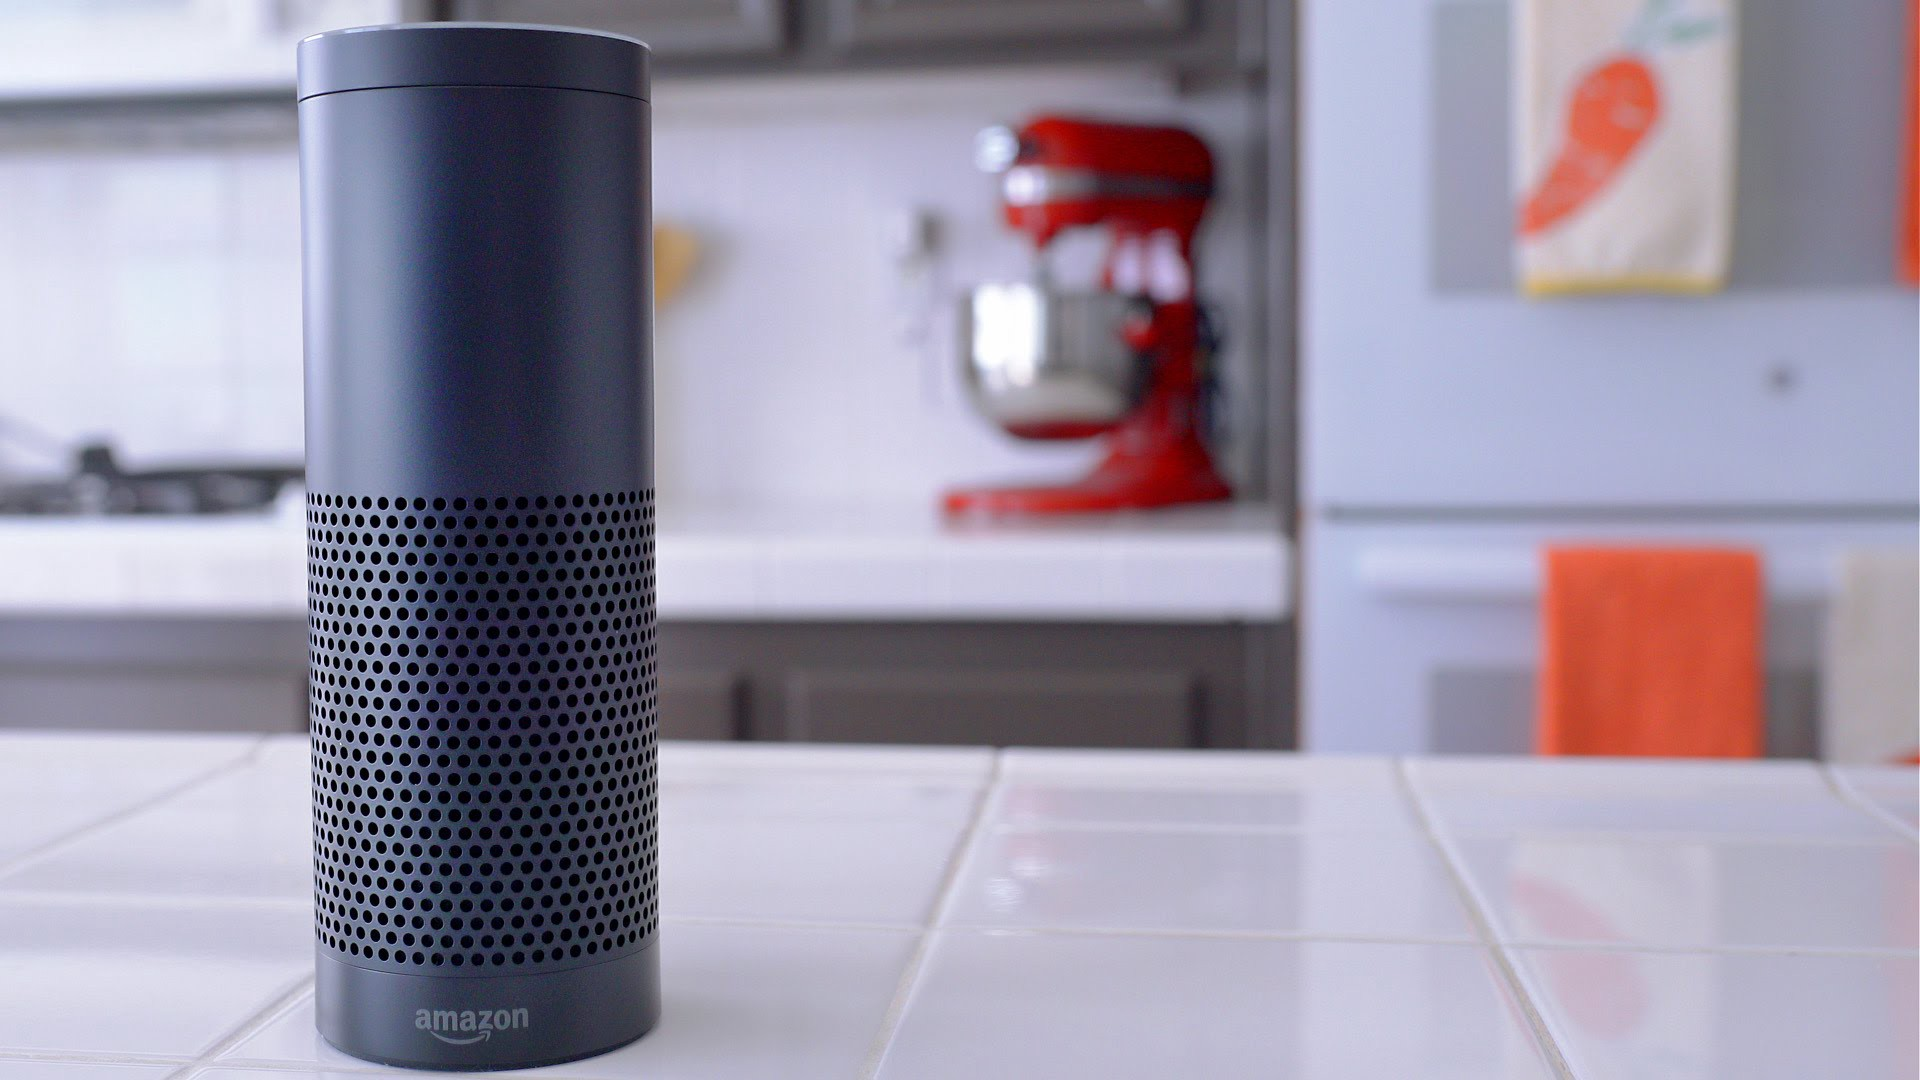 Alexa, tell me how to build a skill - By